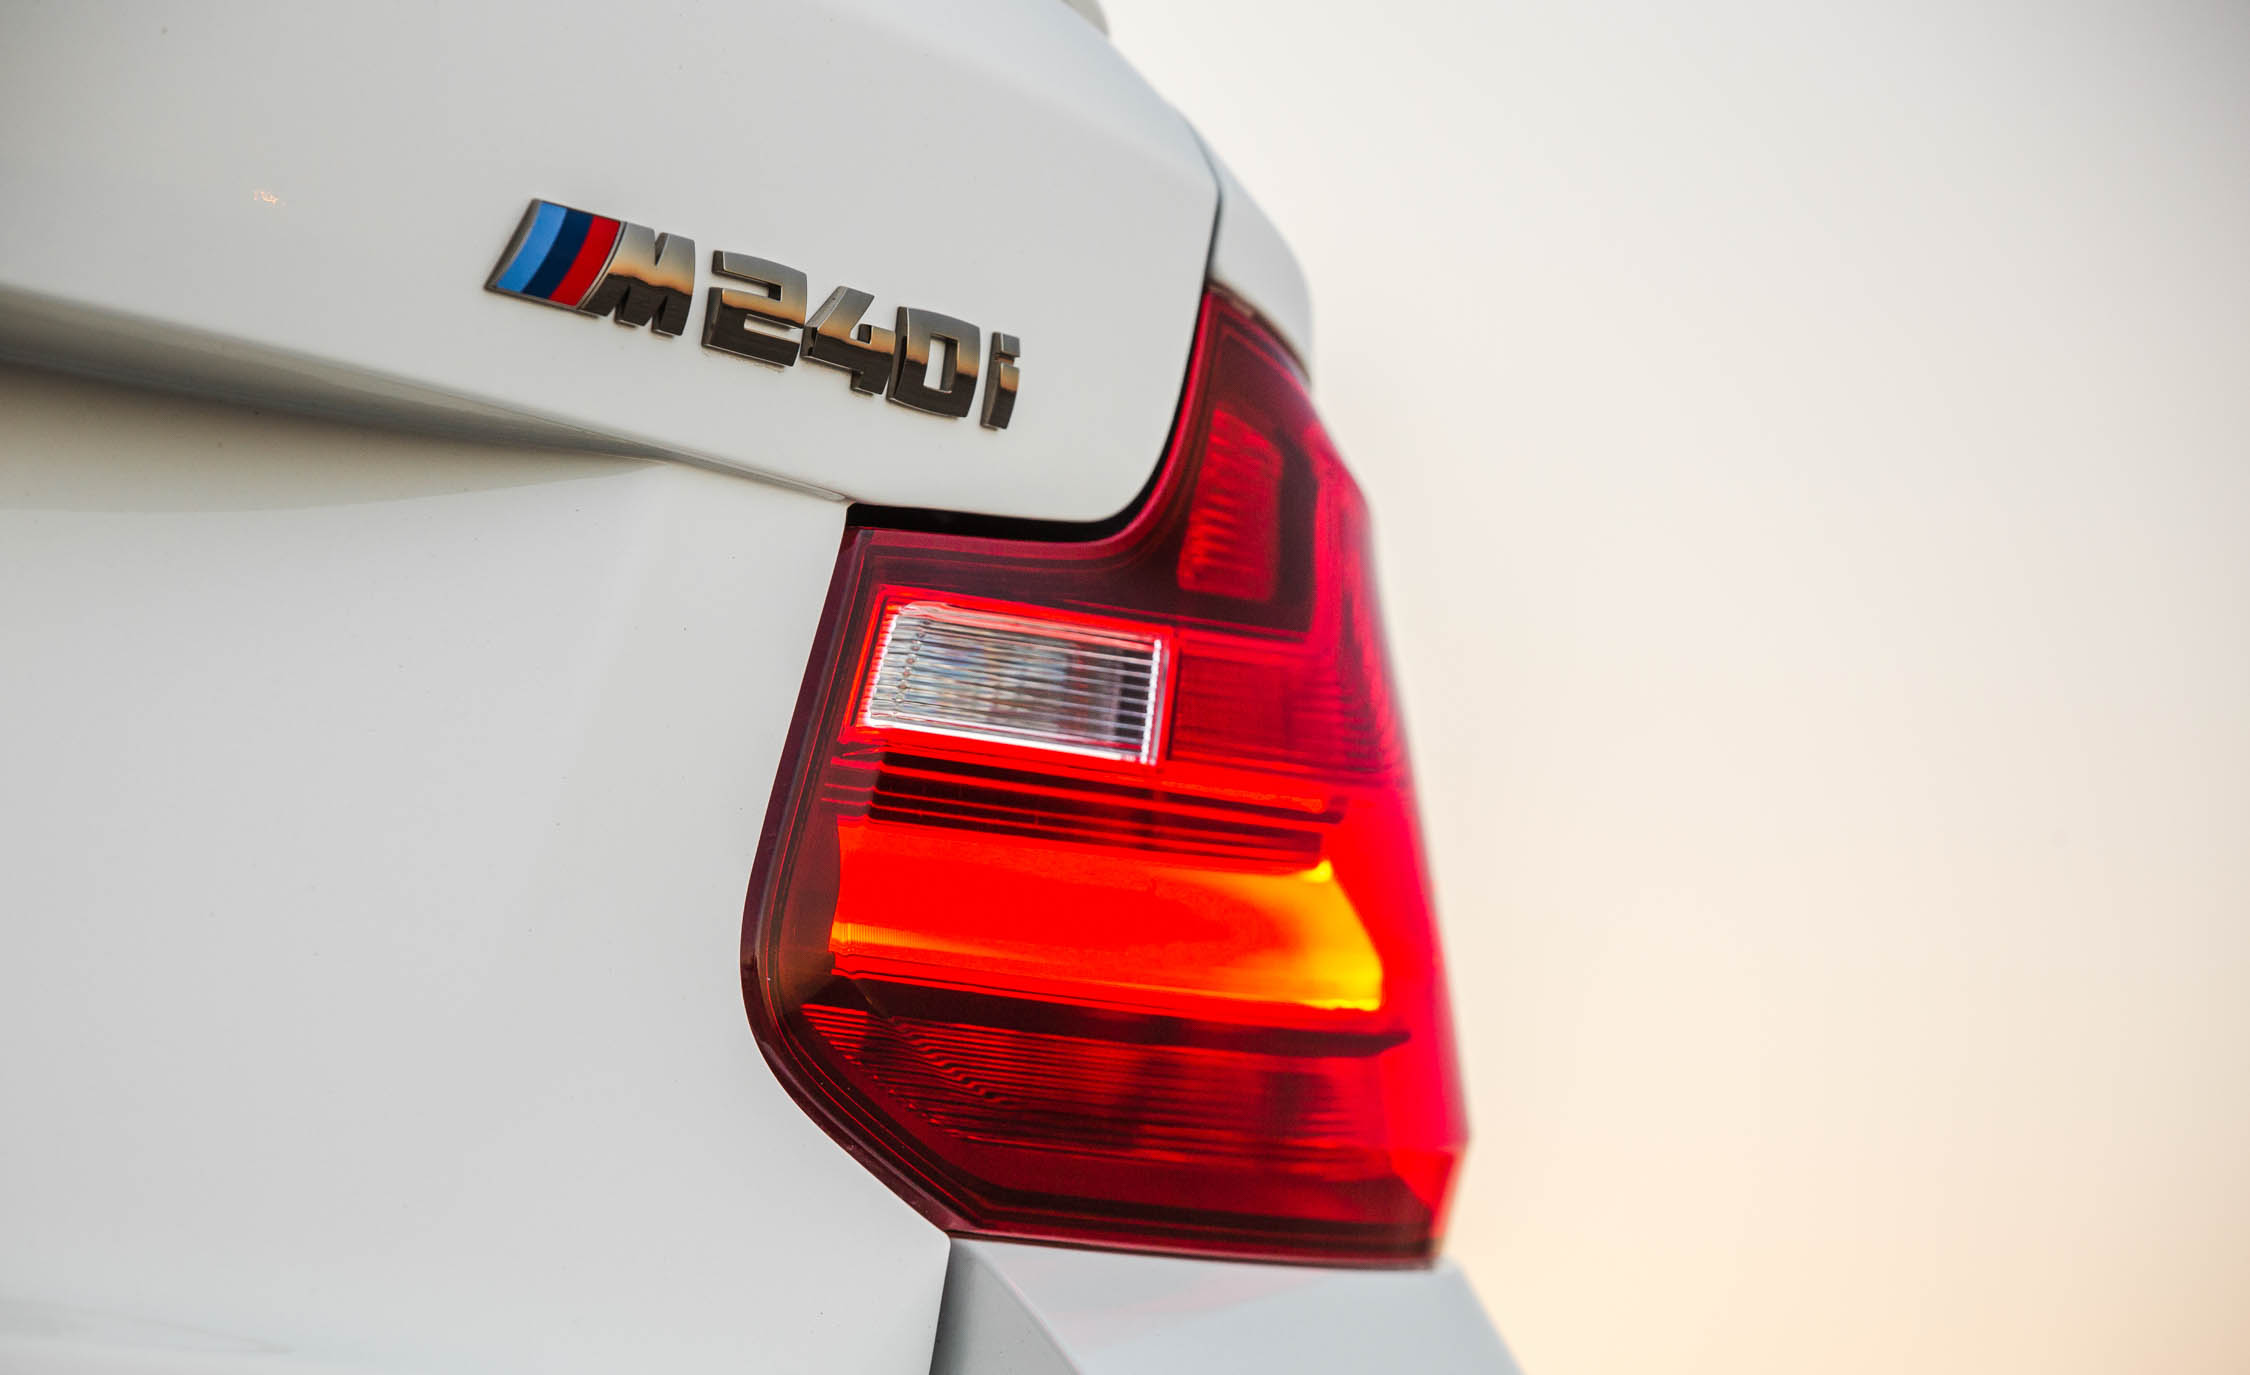 2017 BMW M240i Coupe Automatic Exterior View Rear Badge Emblem (Photo 23 of 36)